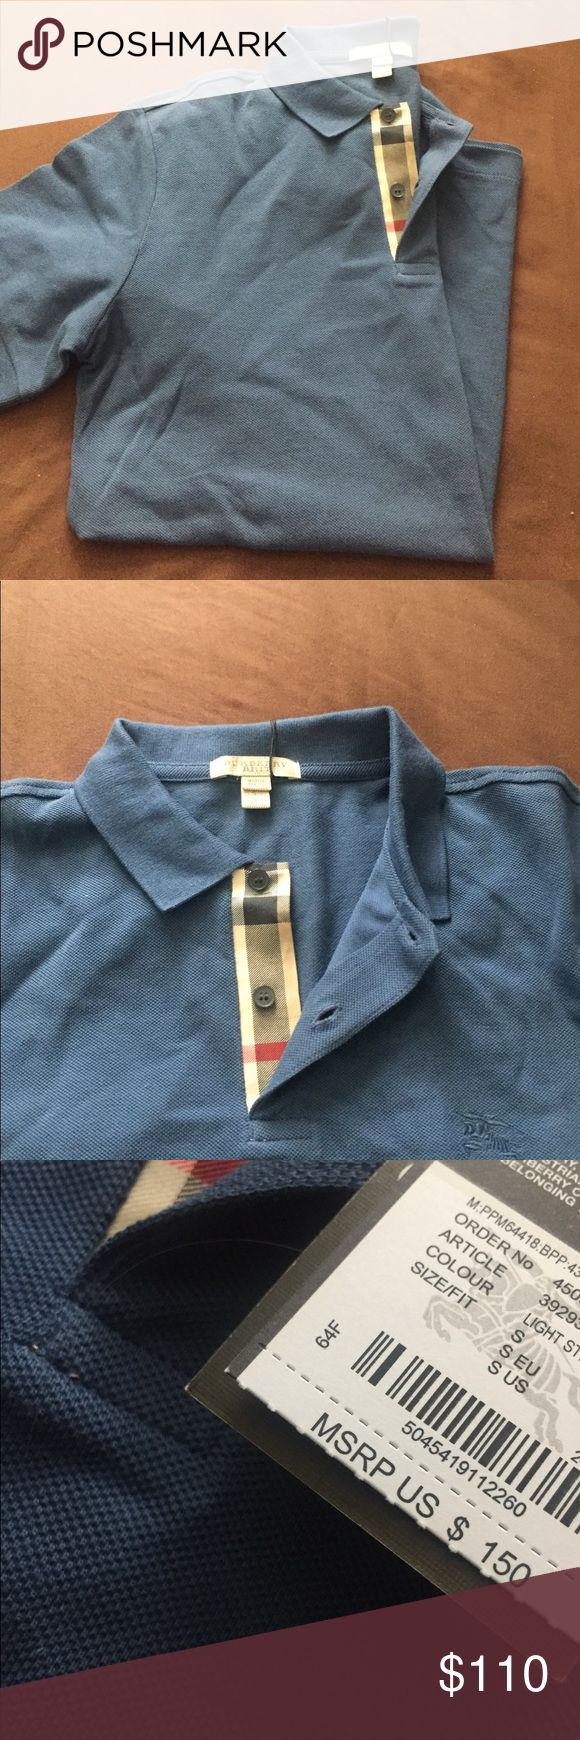 💥FLASH SALE💥AUTHENTIC BURBERRY MEN'S POLO💙 This is a blue gray authentic Burberry men's polo. It does have the tags attached and the classic Burberry check by the buttons. Burberry Shirts Polos